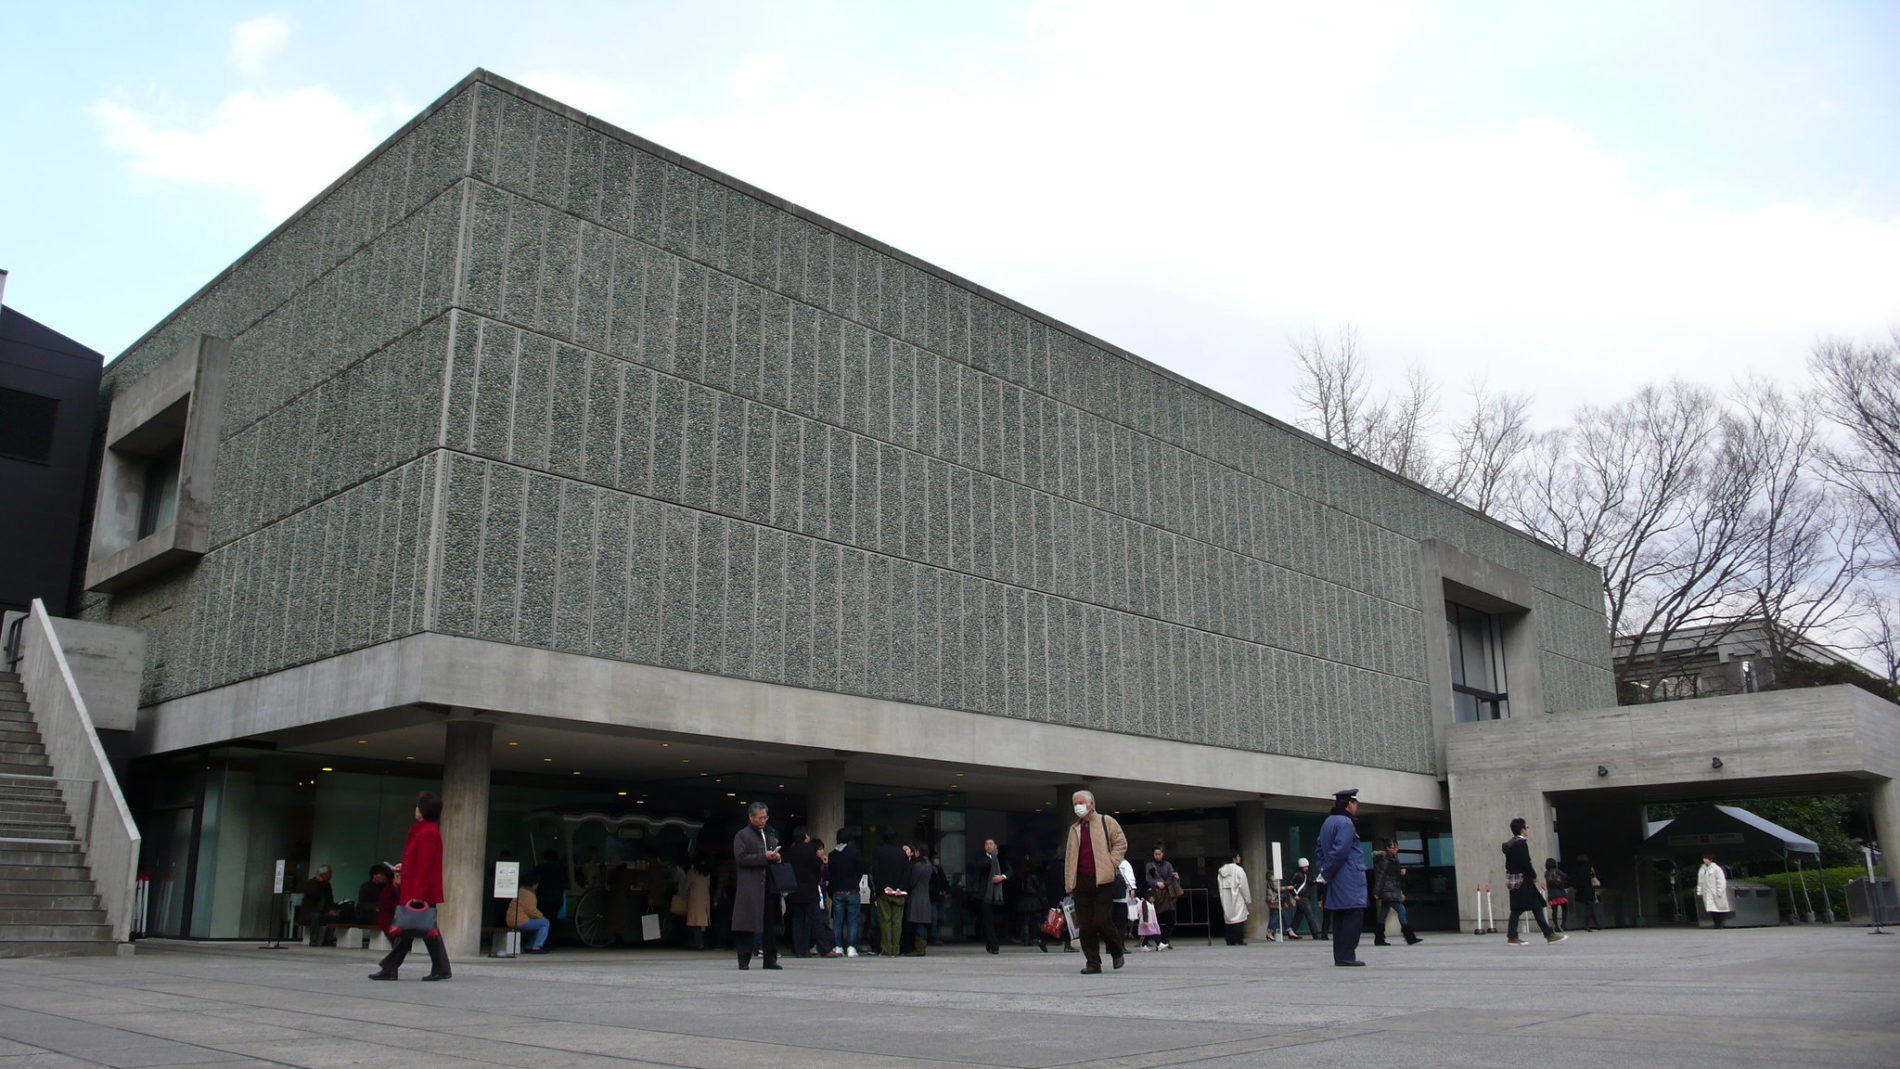 Das National Museum of Western Art im Ueno Park ist dank seines Architektens Le Corbusier UNESCO Weltkulturerbe. (Foto: https://www.flickr.com/photos/yisris/3356045092)